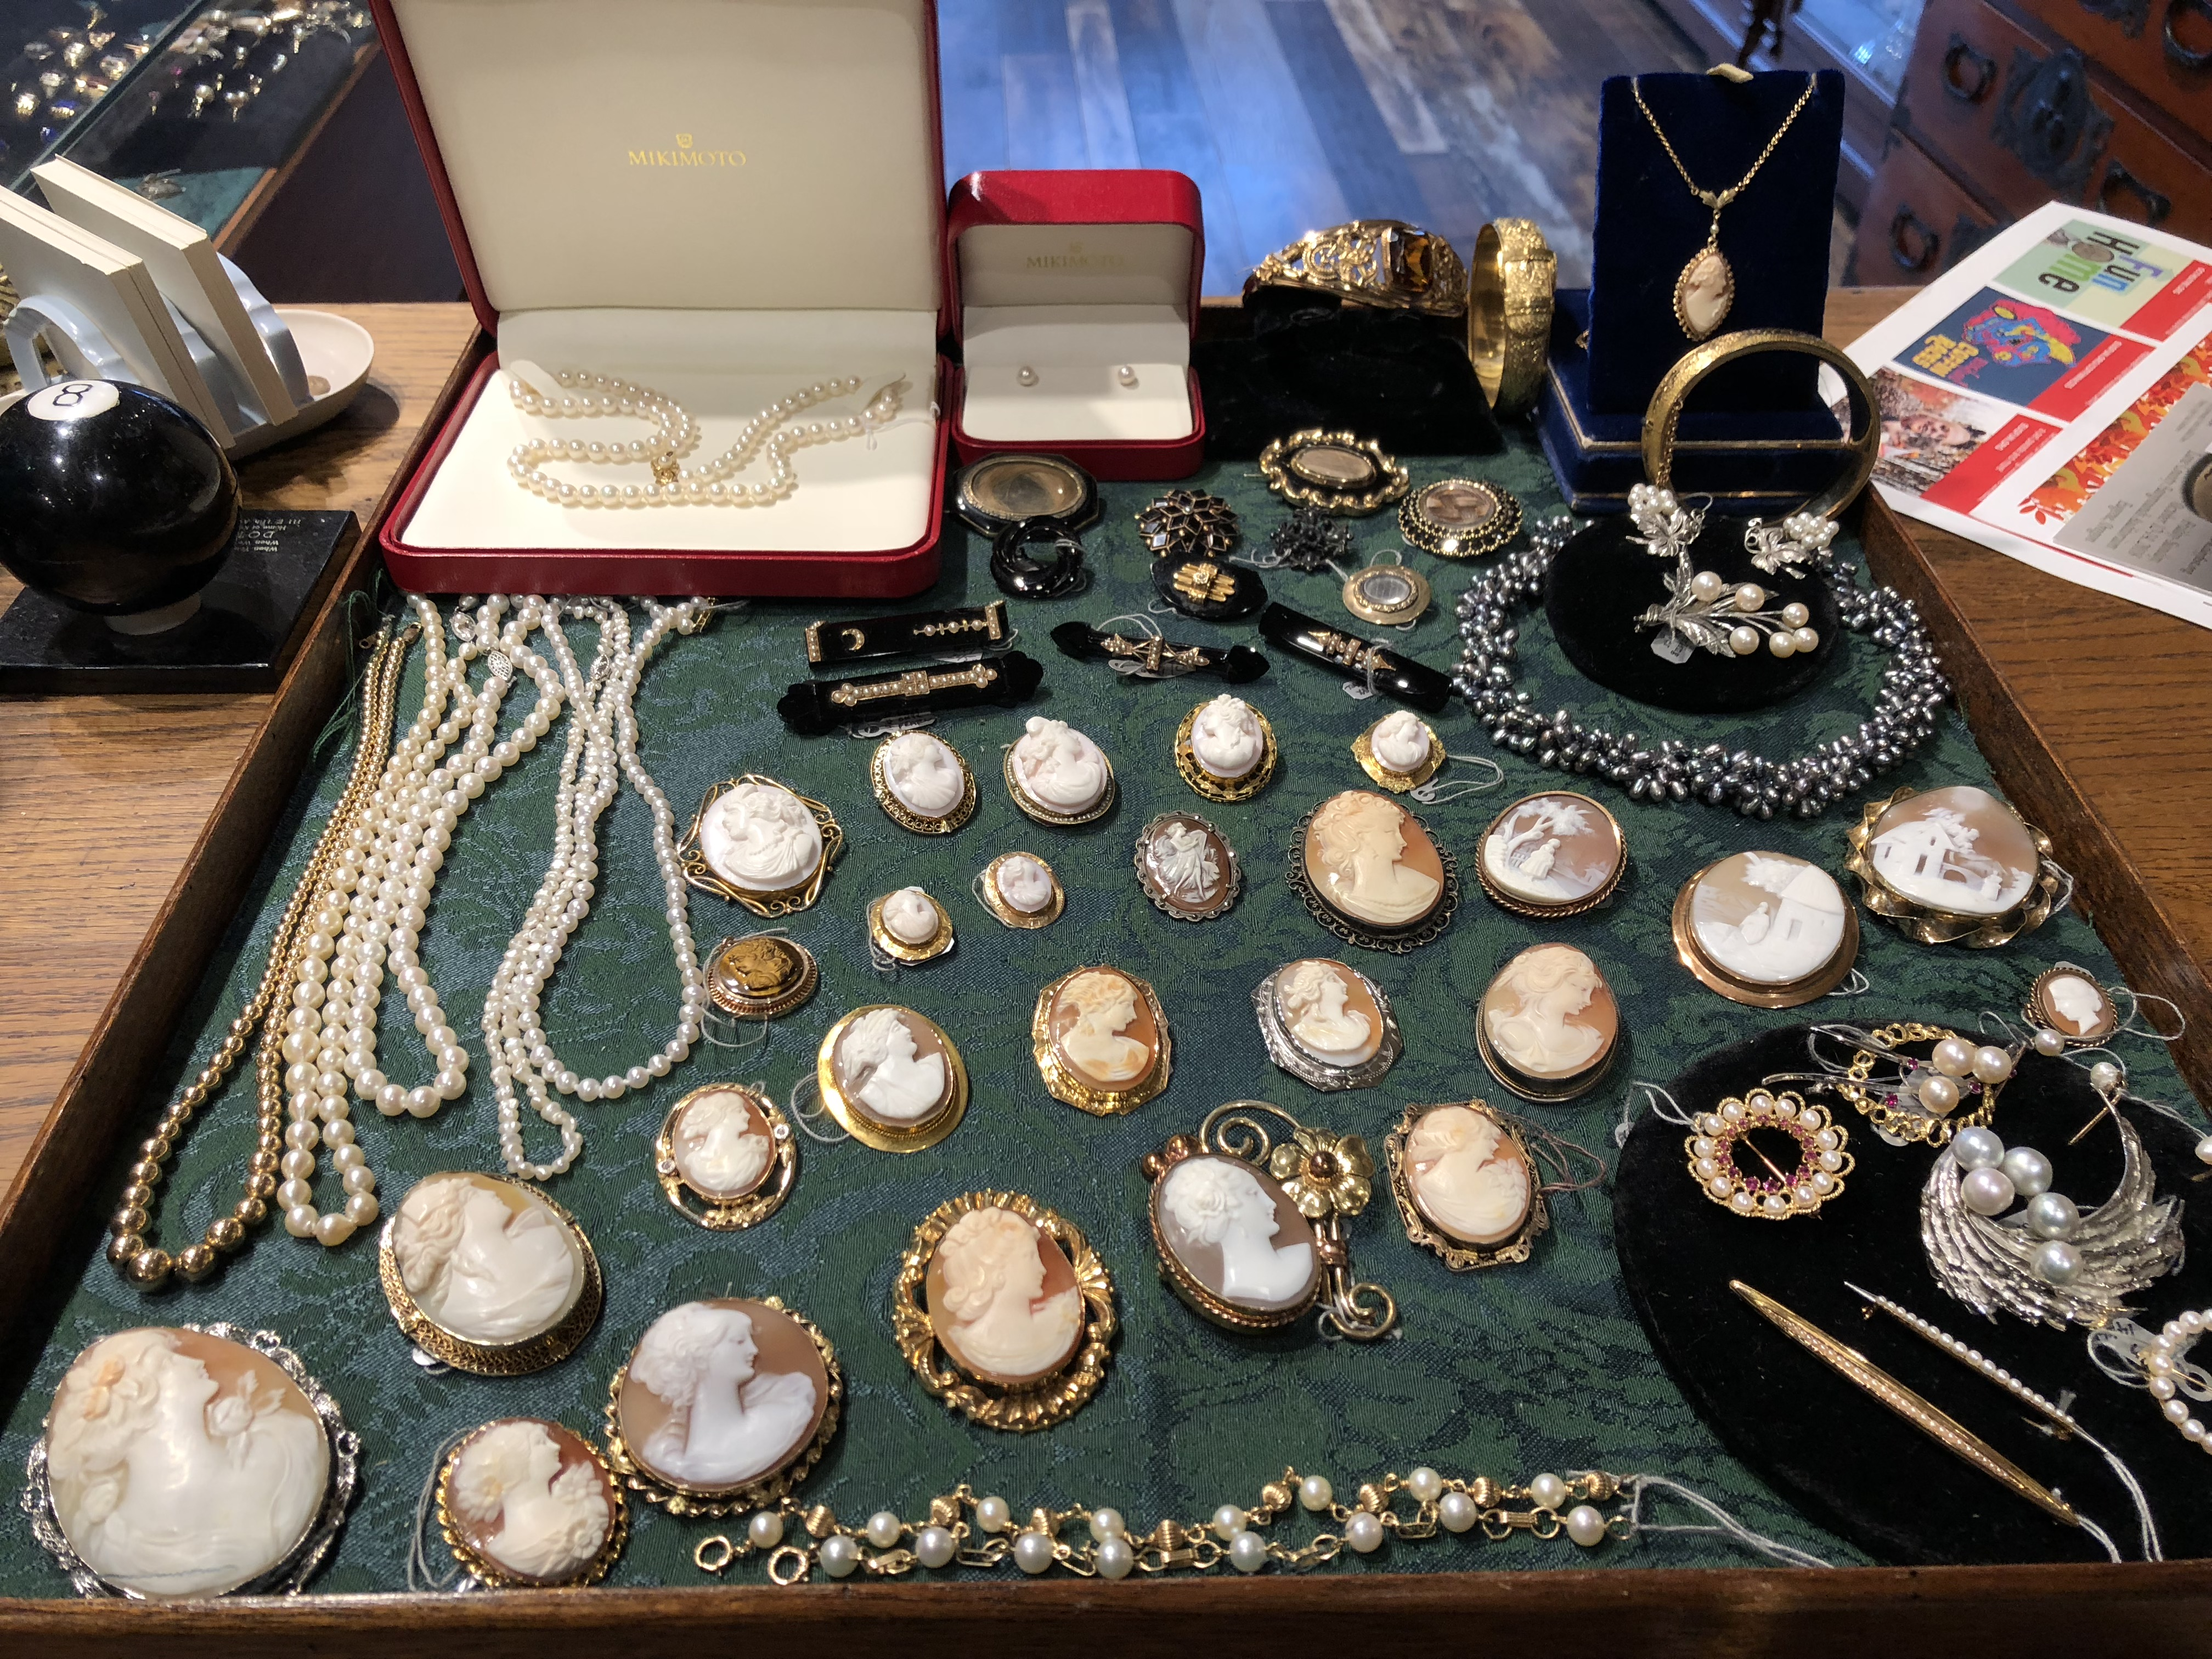 Cameo broaches & pearl jewelry